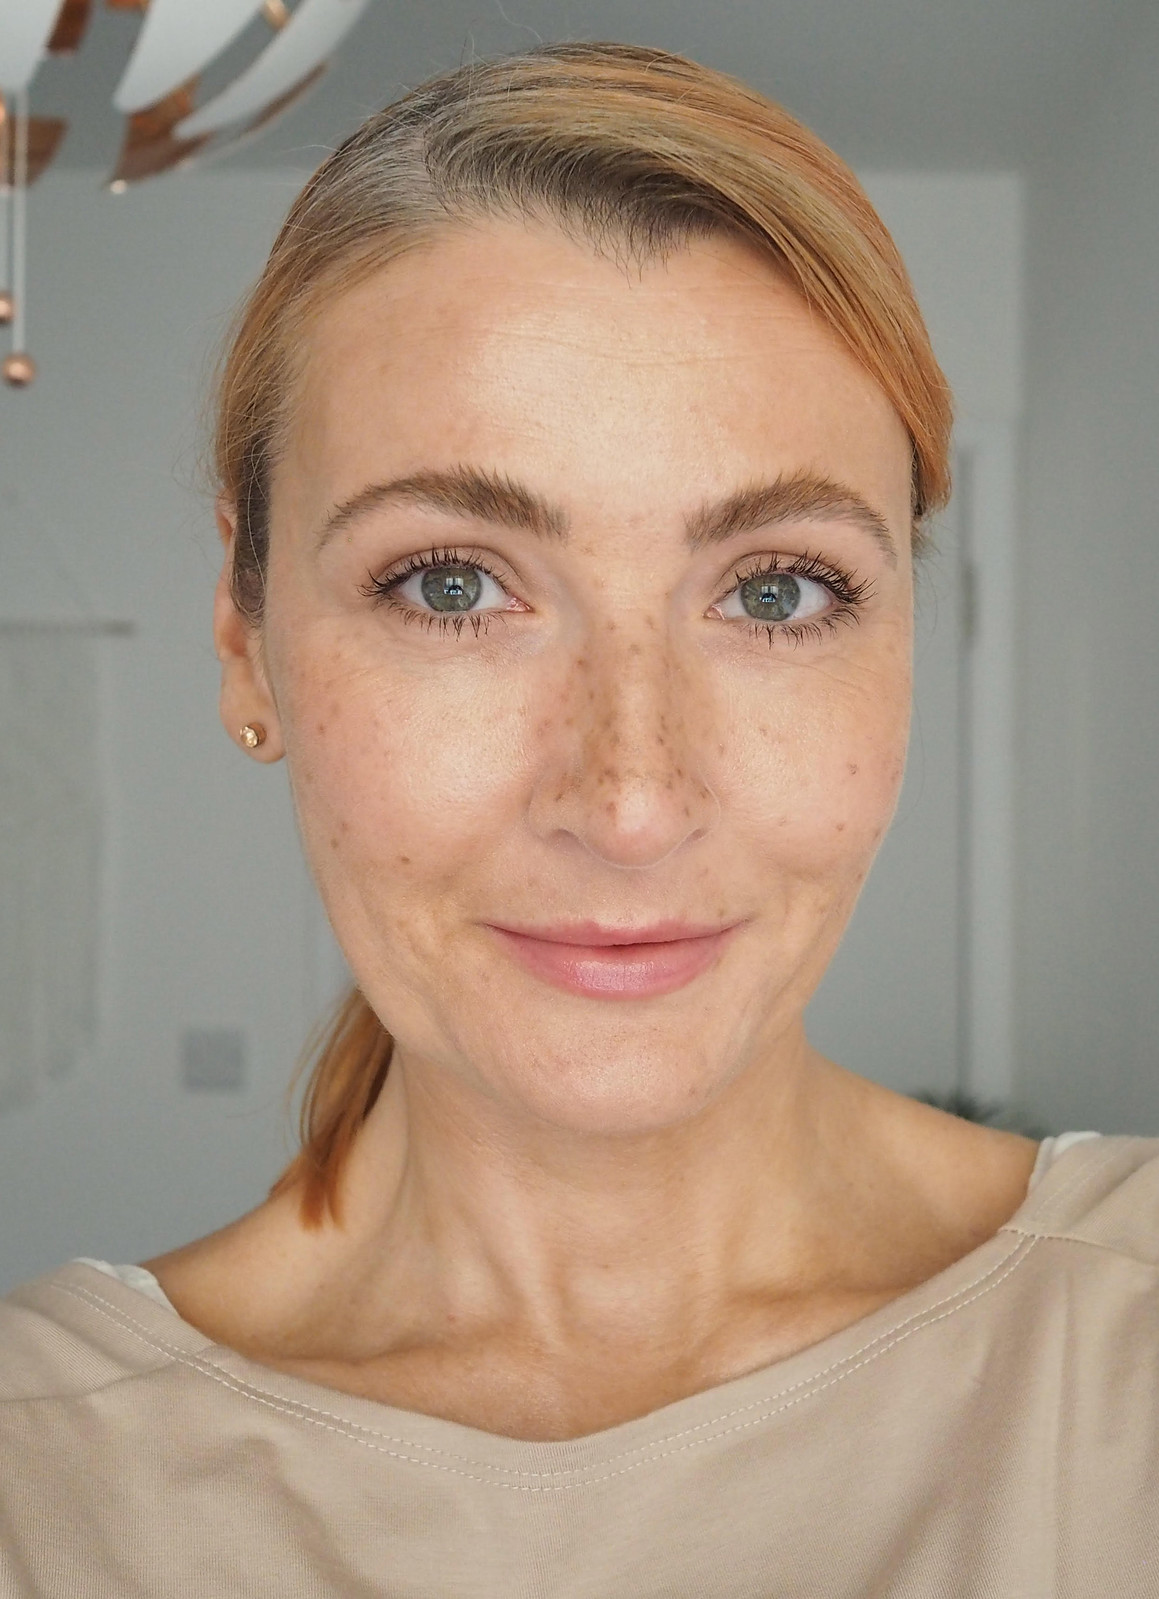 Over 40 Skincare: The Two Makeup Products I Use to Get Glowing Skin | Not Dressed As Lamb, Over 40 Fashion and Beauty Blog